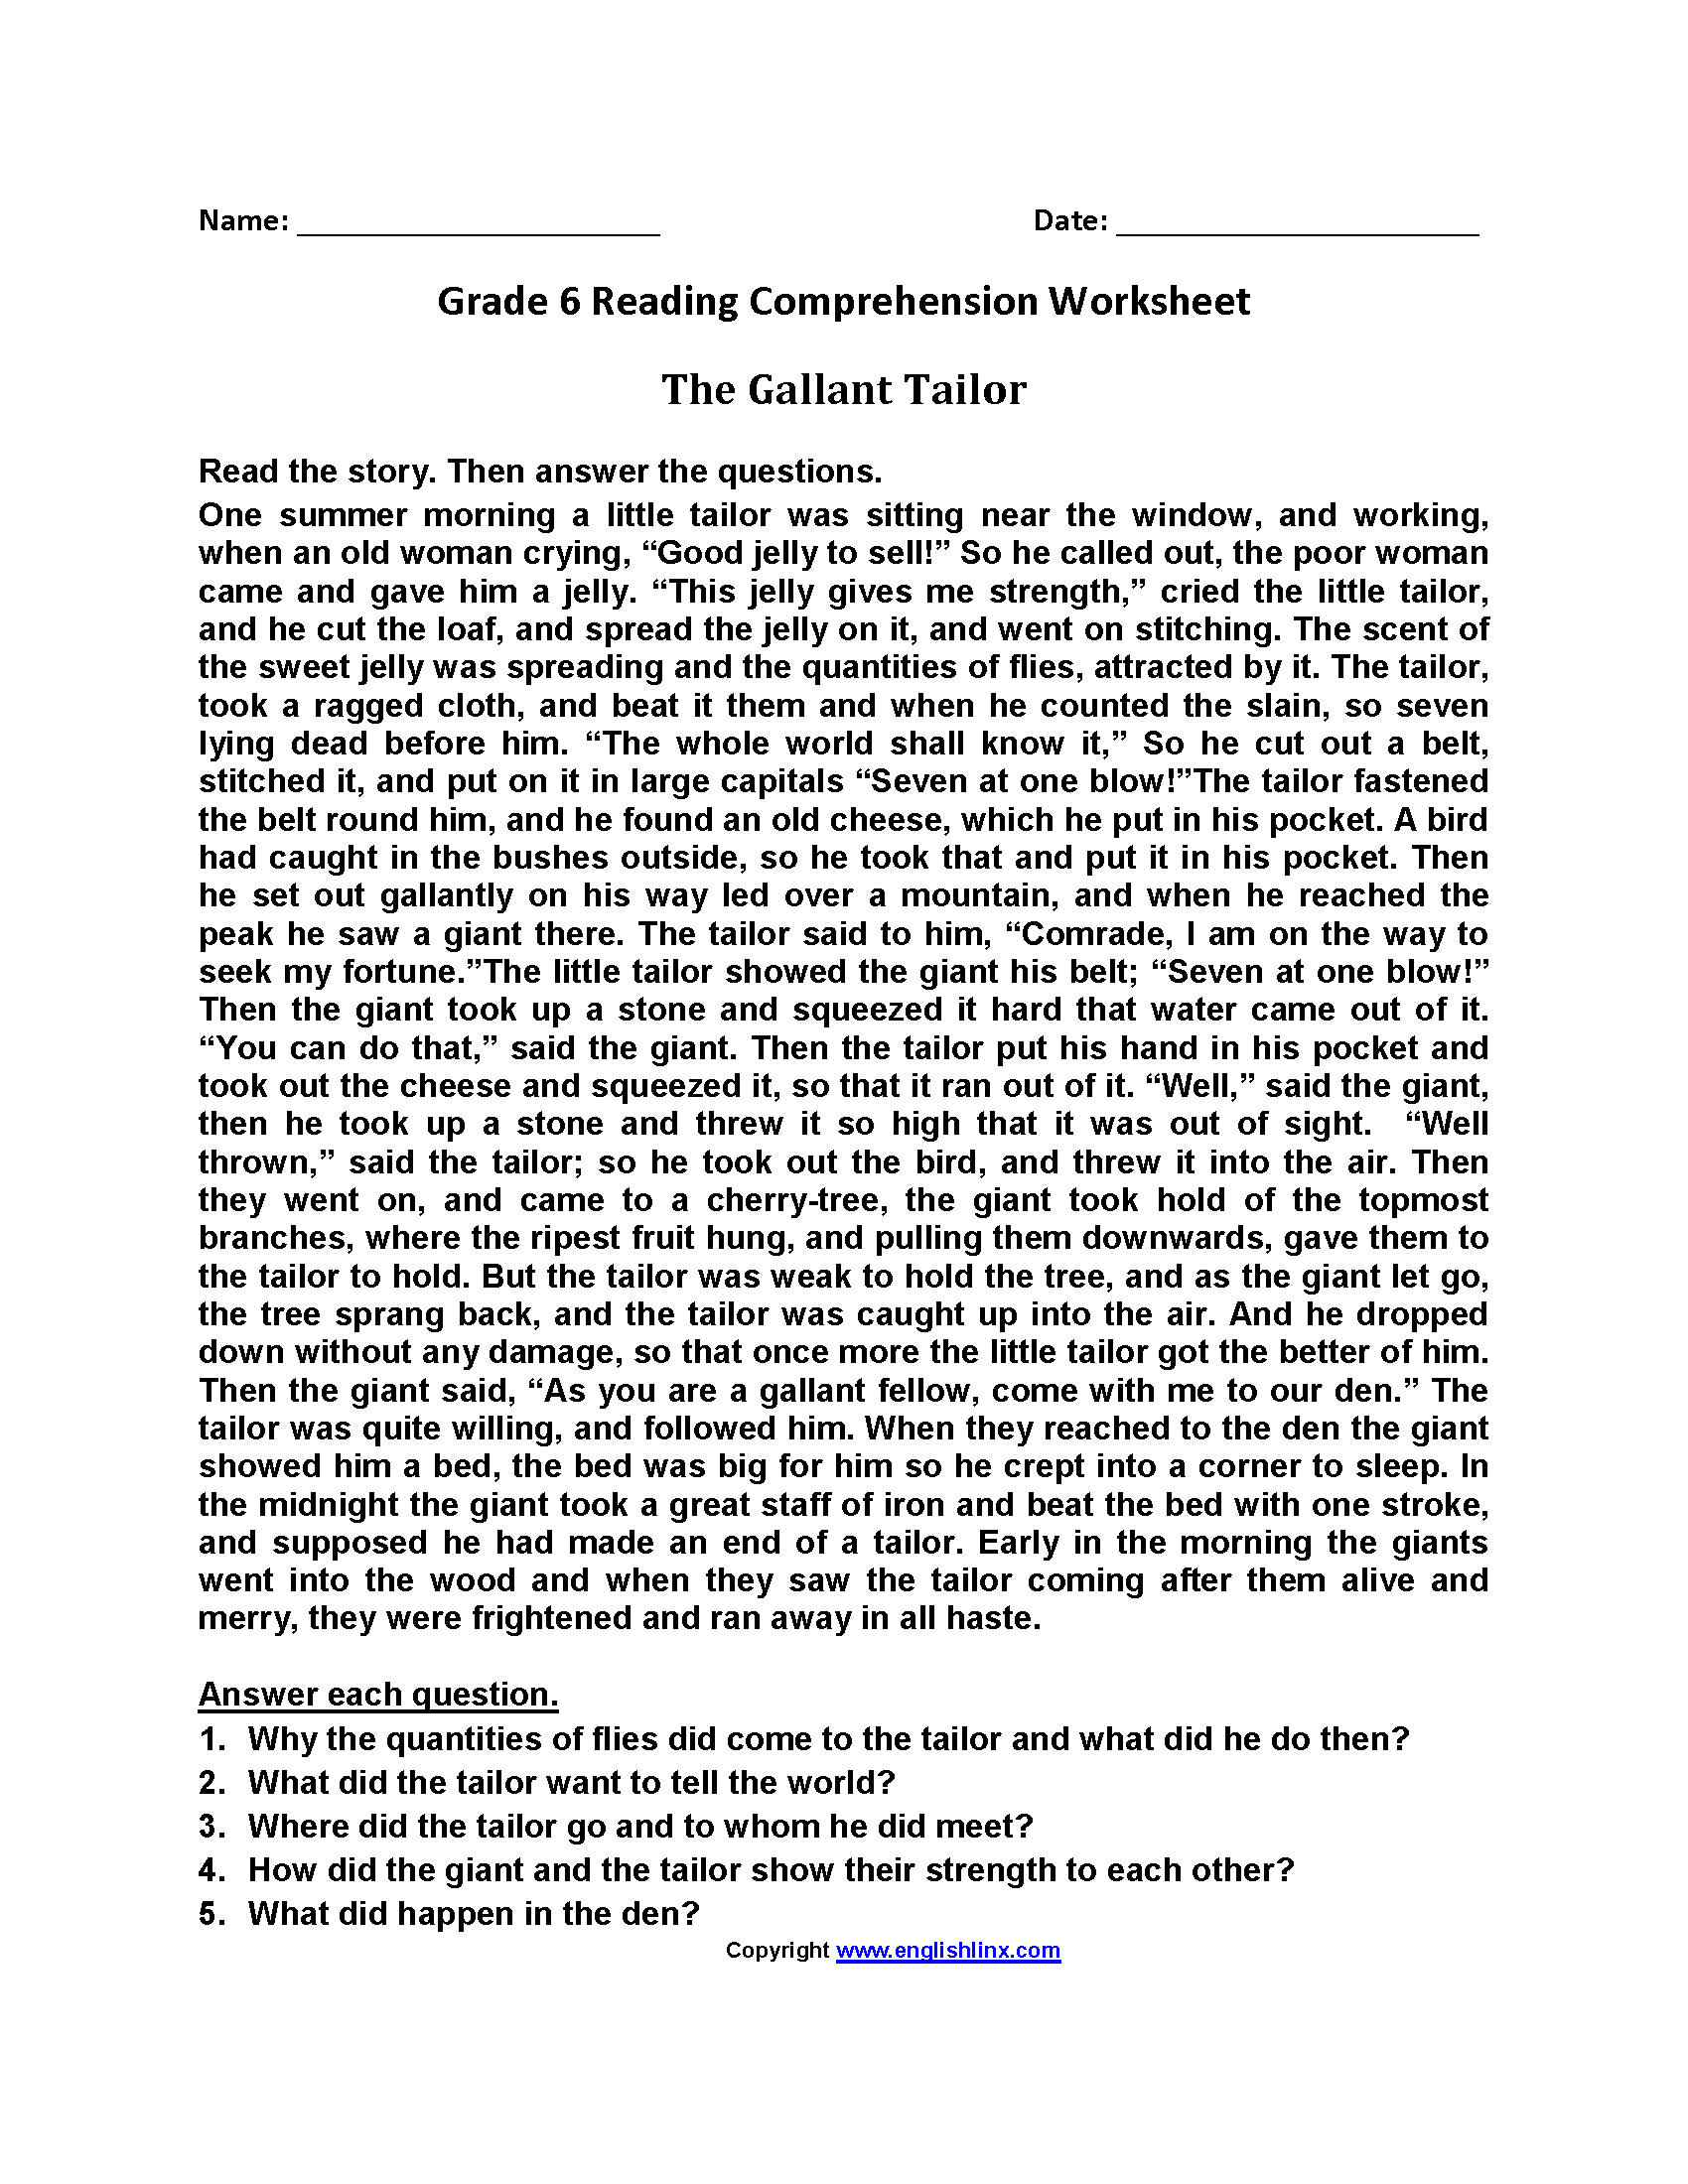 The Gallant Tailor Sixth Grade Reading Worksheets